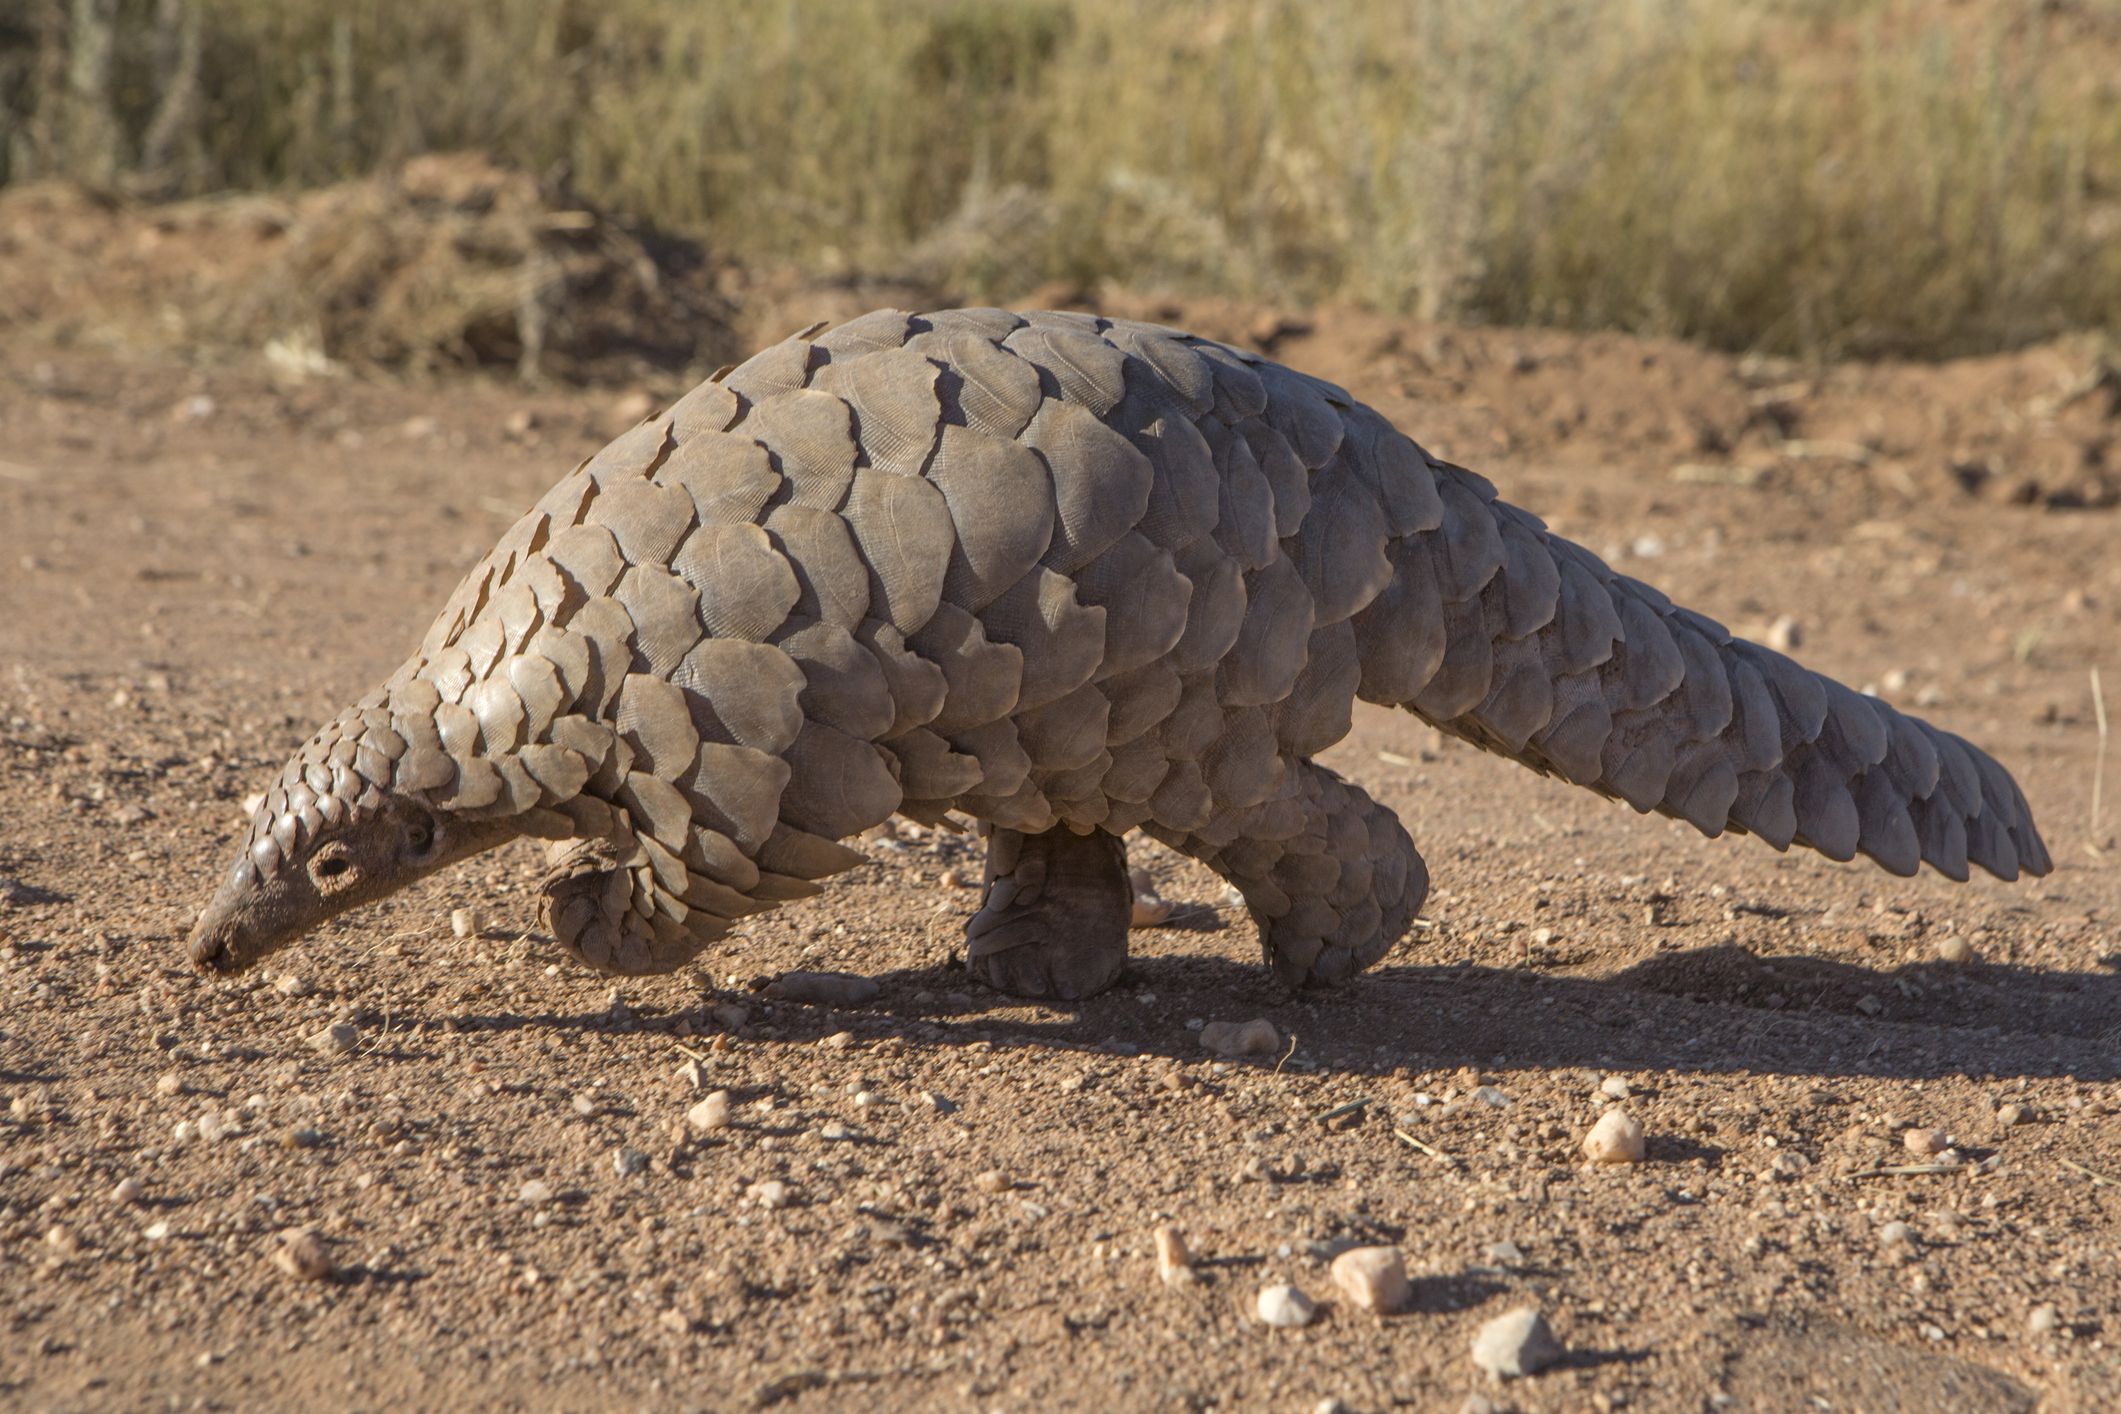 Pangolins are the world's most illegally trafficked animal